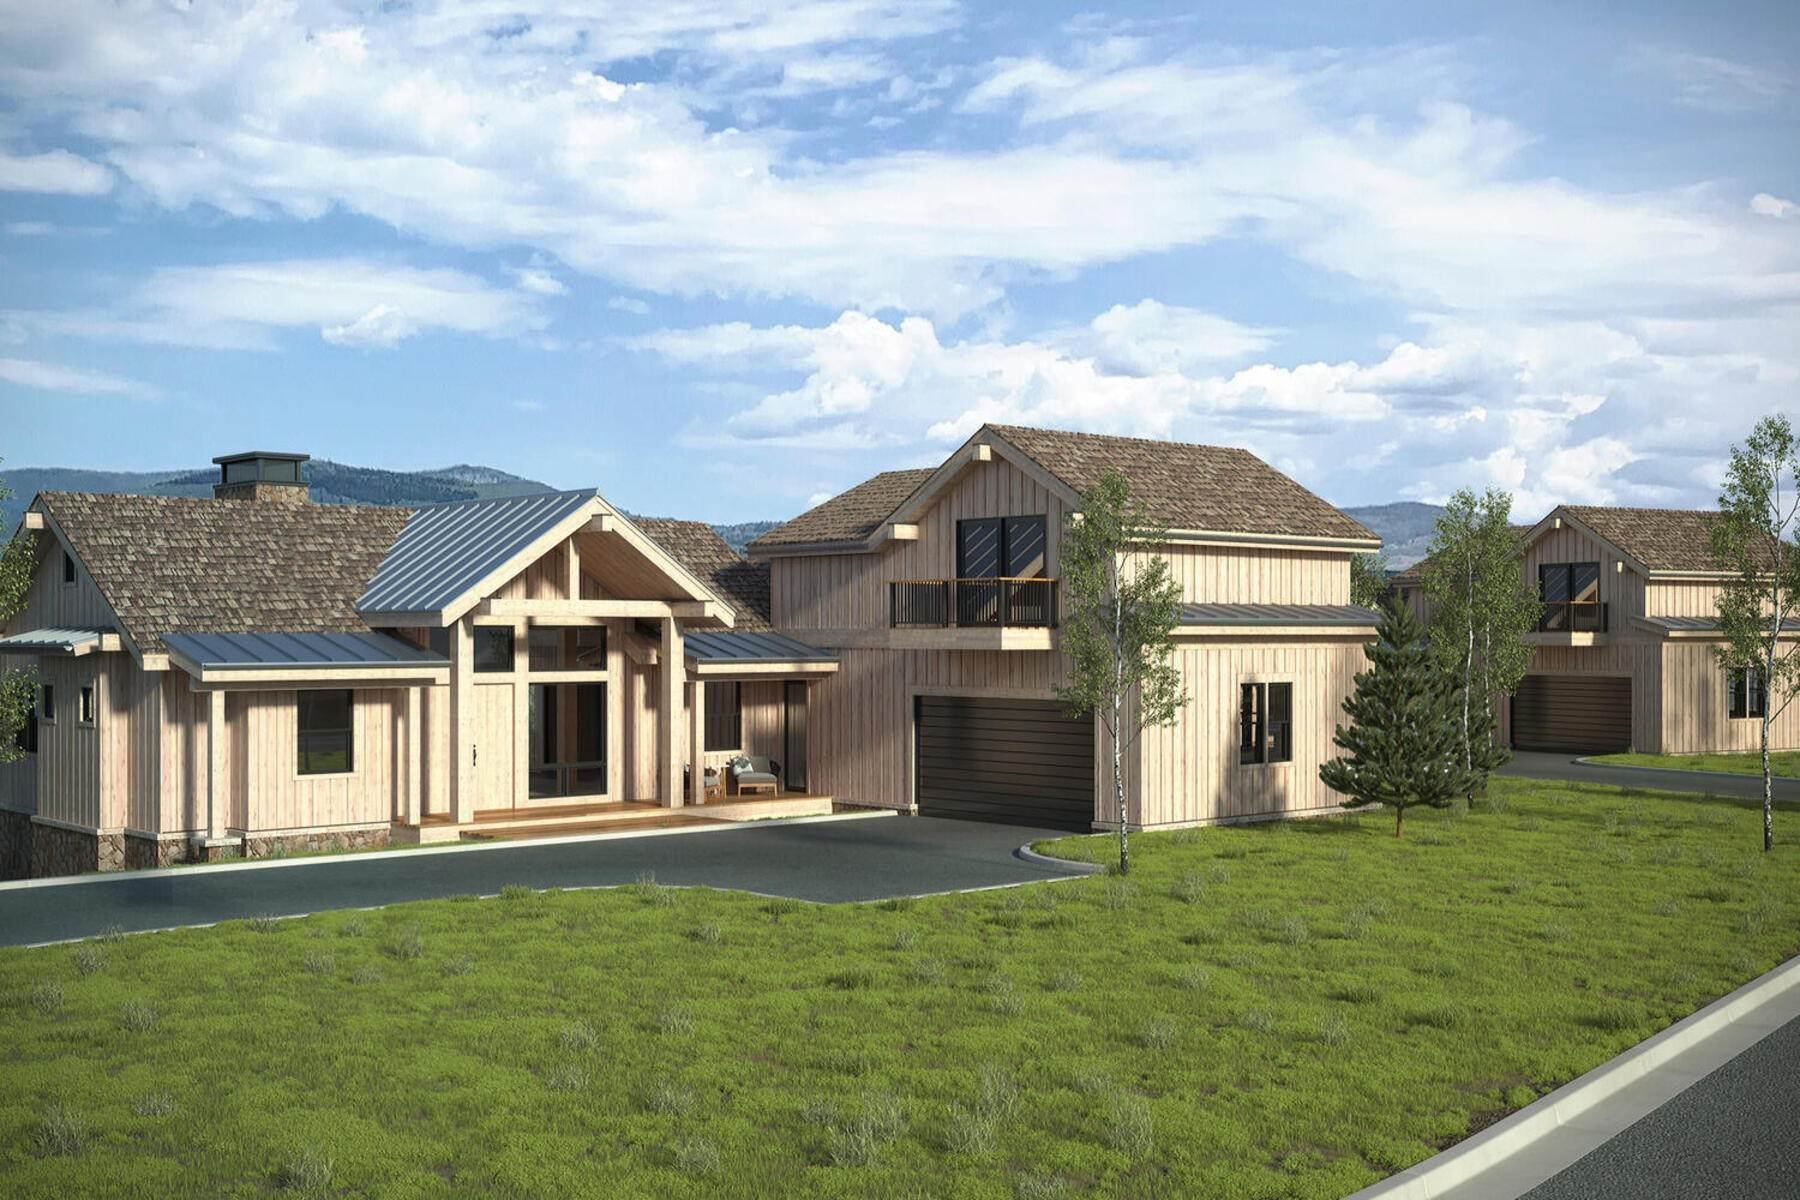 fractional ownership prop for Sale at 1/8 Fractional Ownership Opportunity In Brand New Kingfisher Cabin 7615 E Stardust Court #319E, 5.13 Heber City, Utah 84032 United States